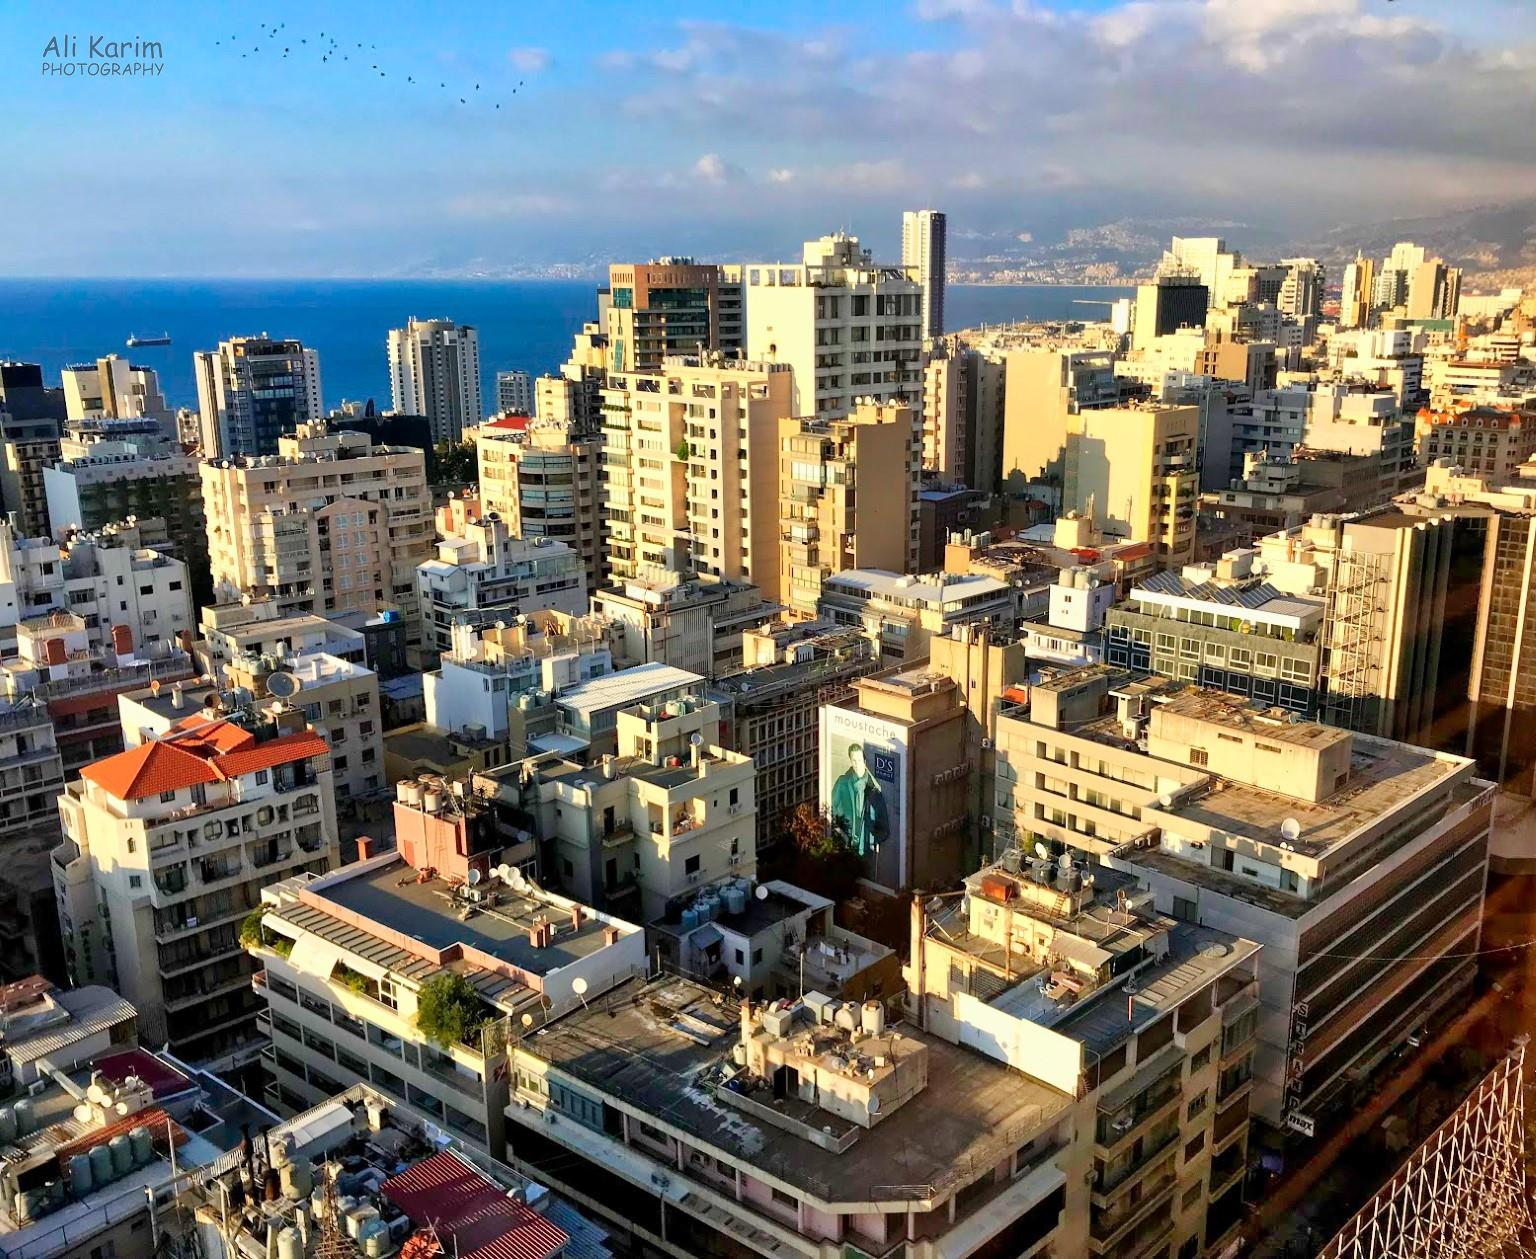 View from our hotel of Hamra, Beirut, and the Mediterranean Sea